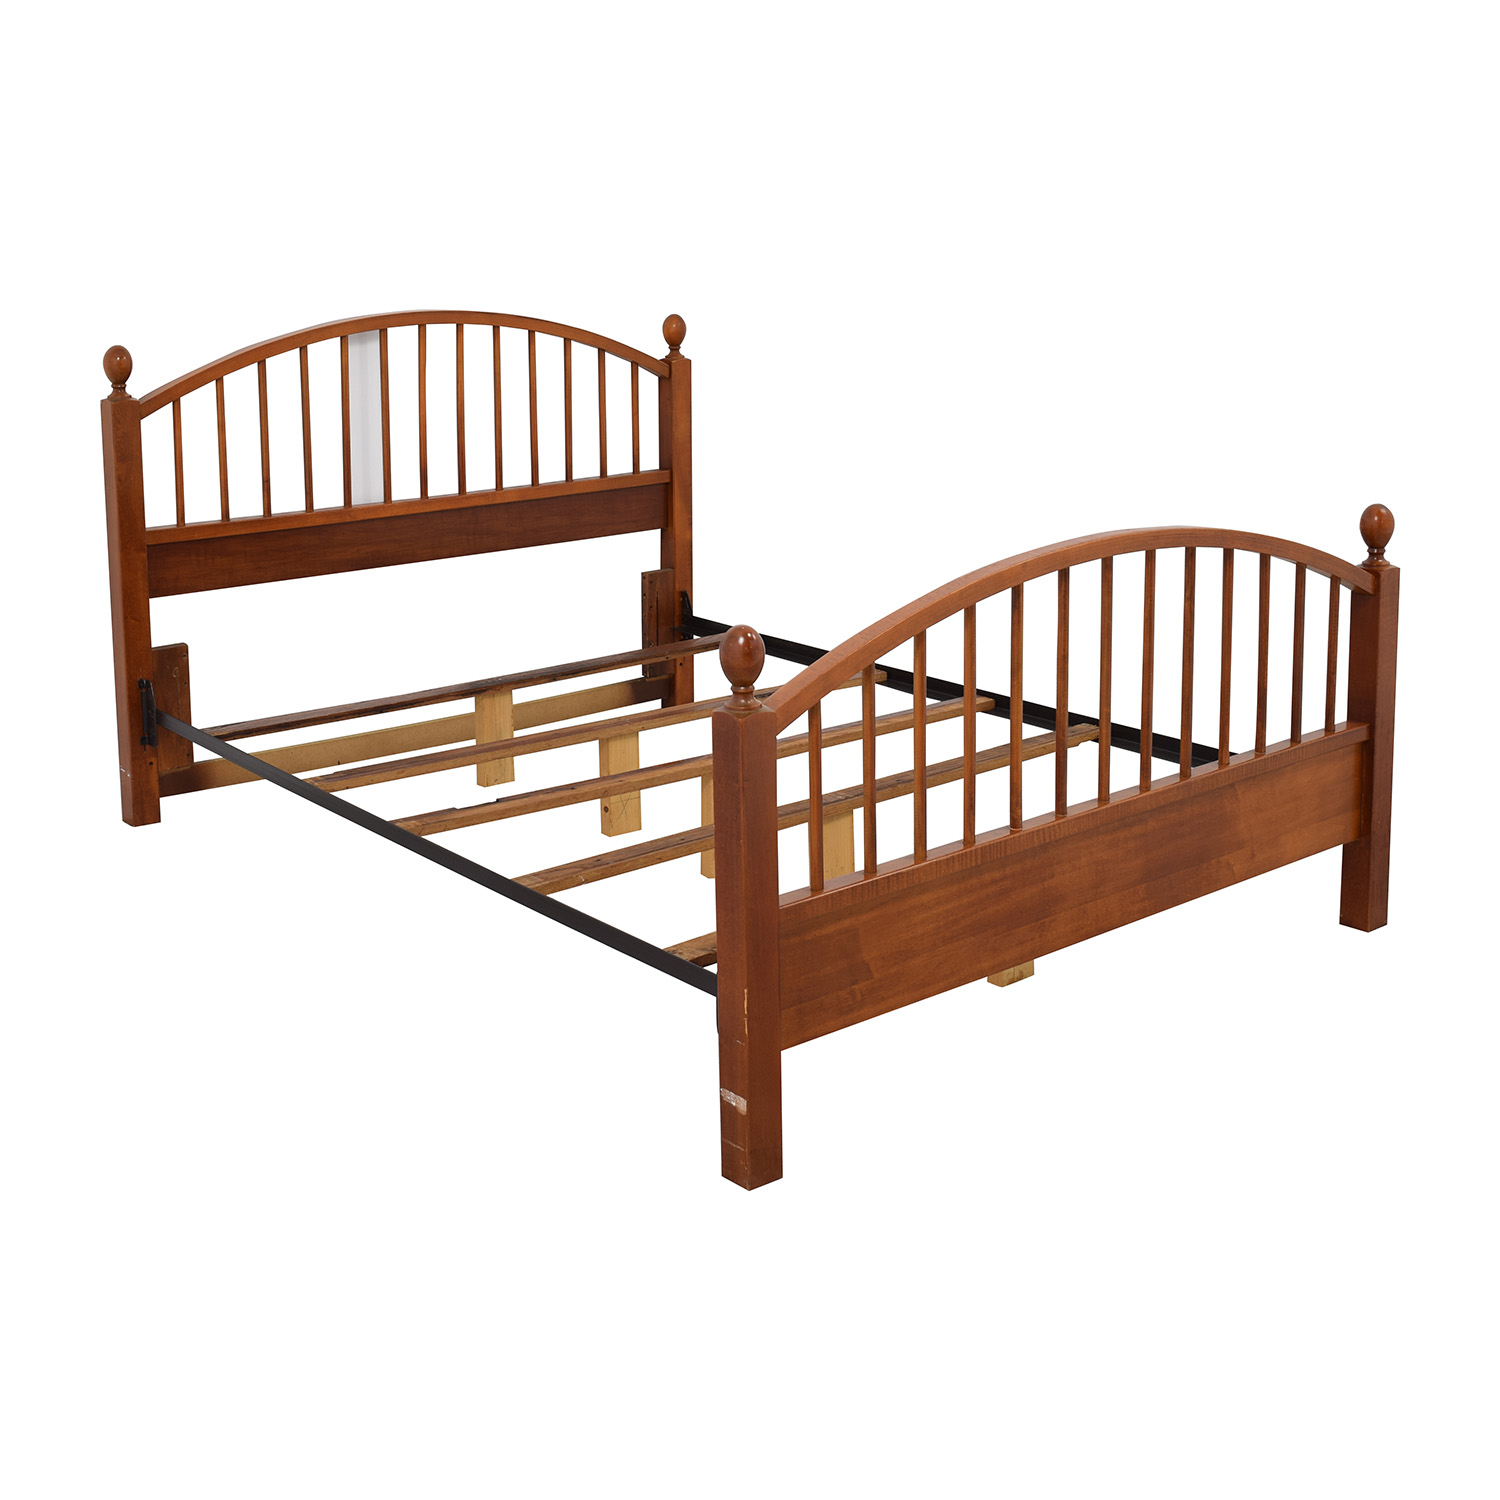 Queen Beds Online 77 Off Solid Oak Caged Queen Bed Frame Beds